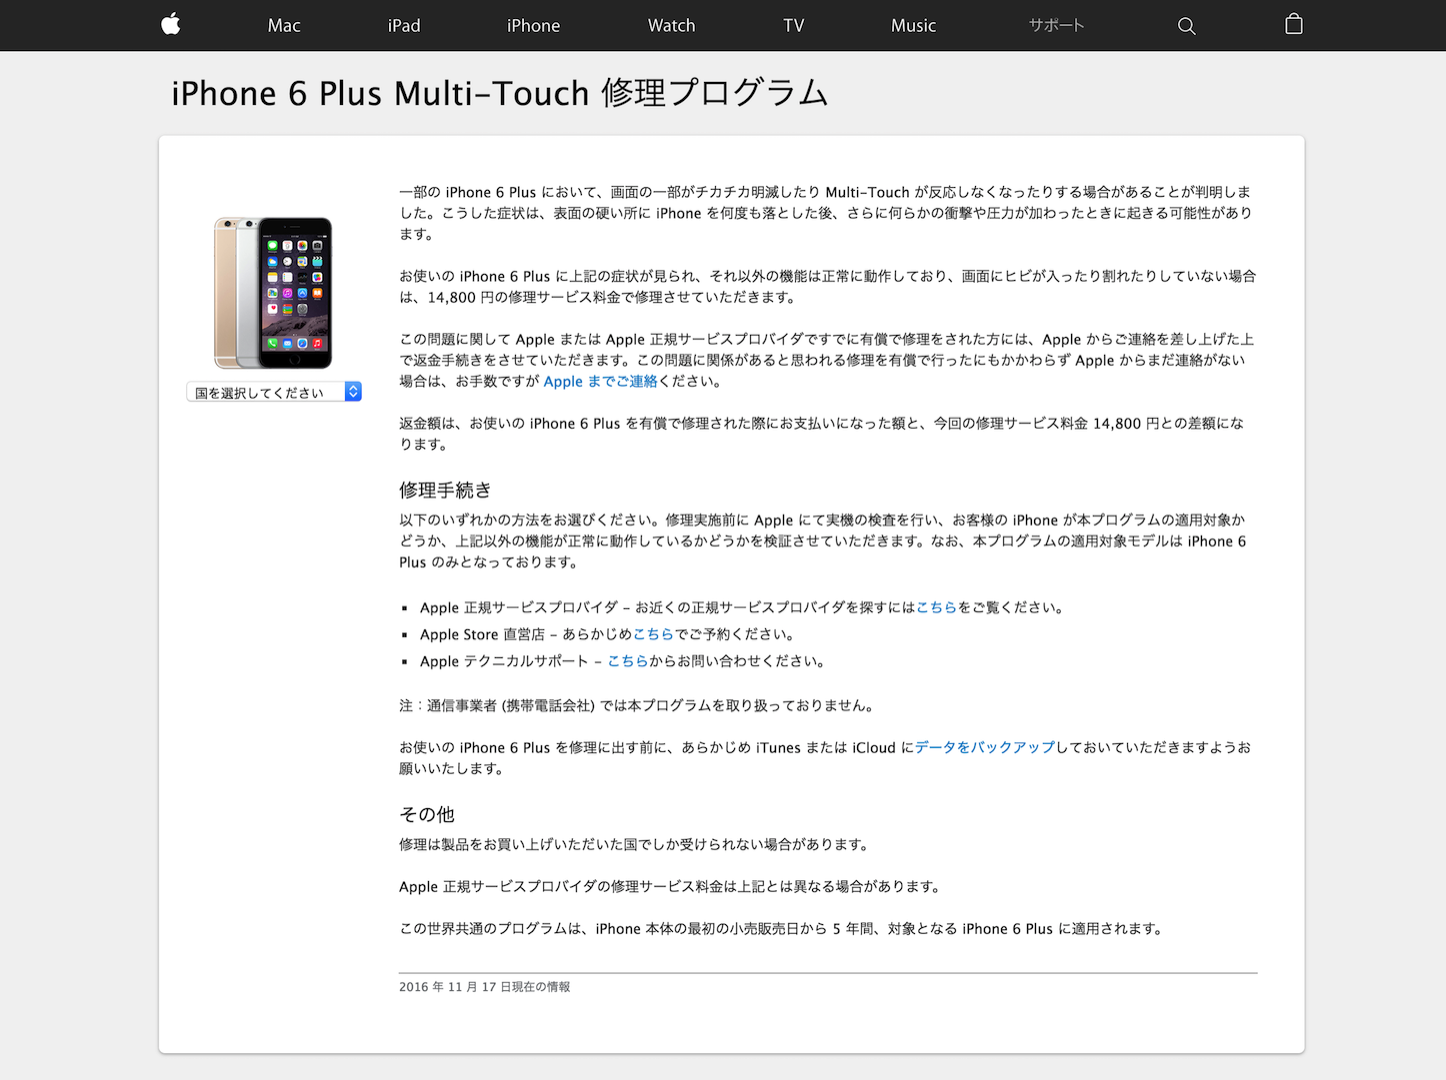 Iphone6plus multitouch program